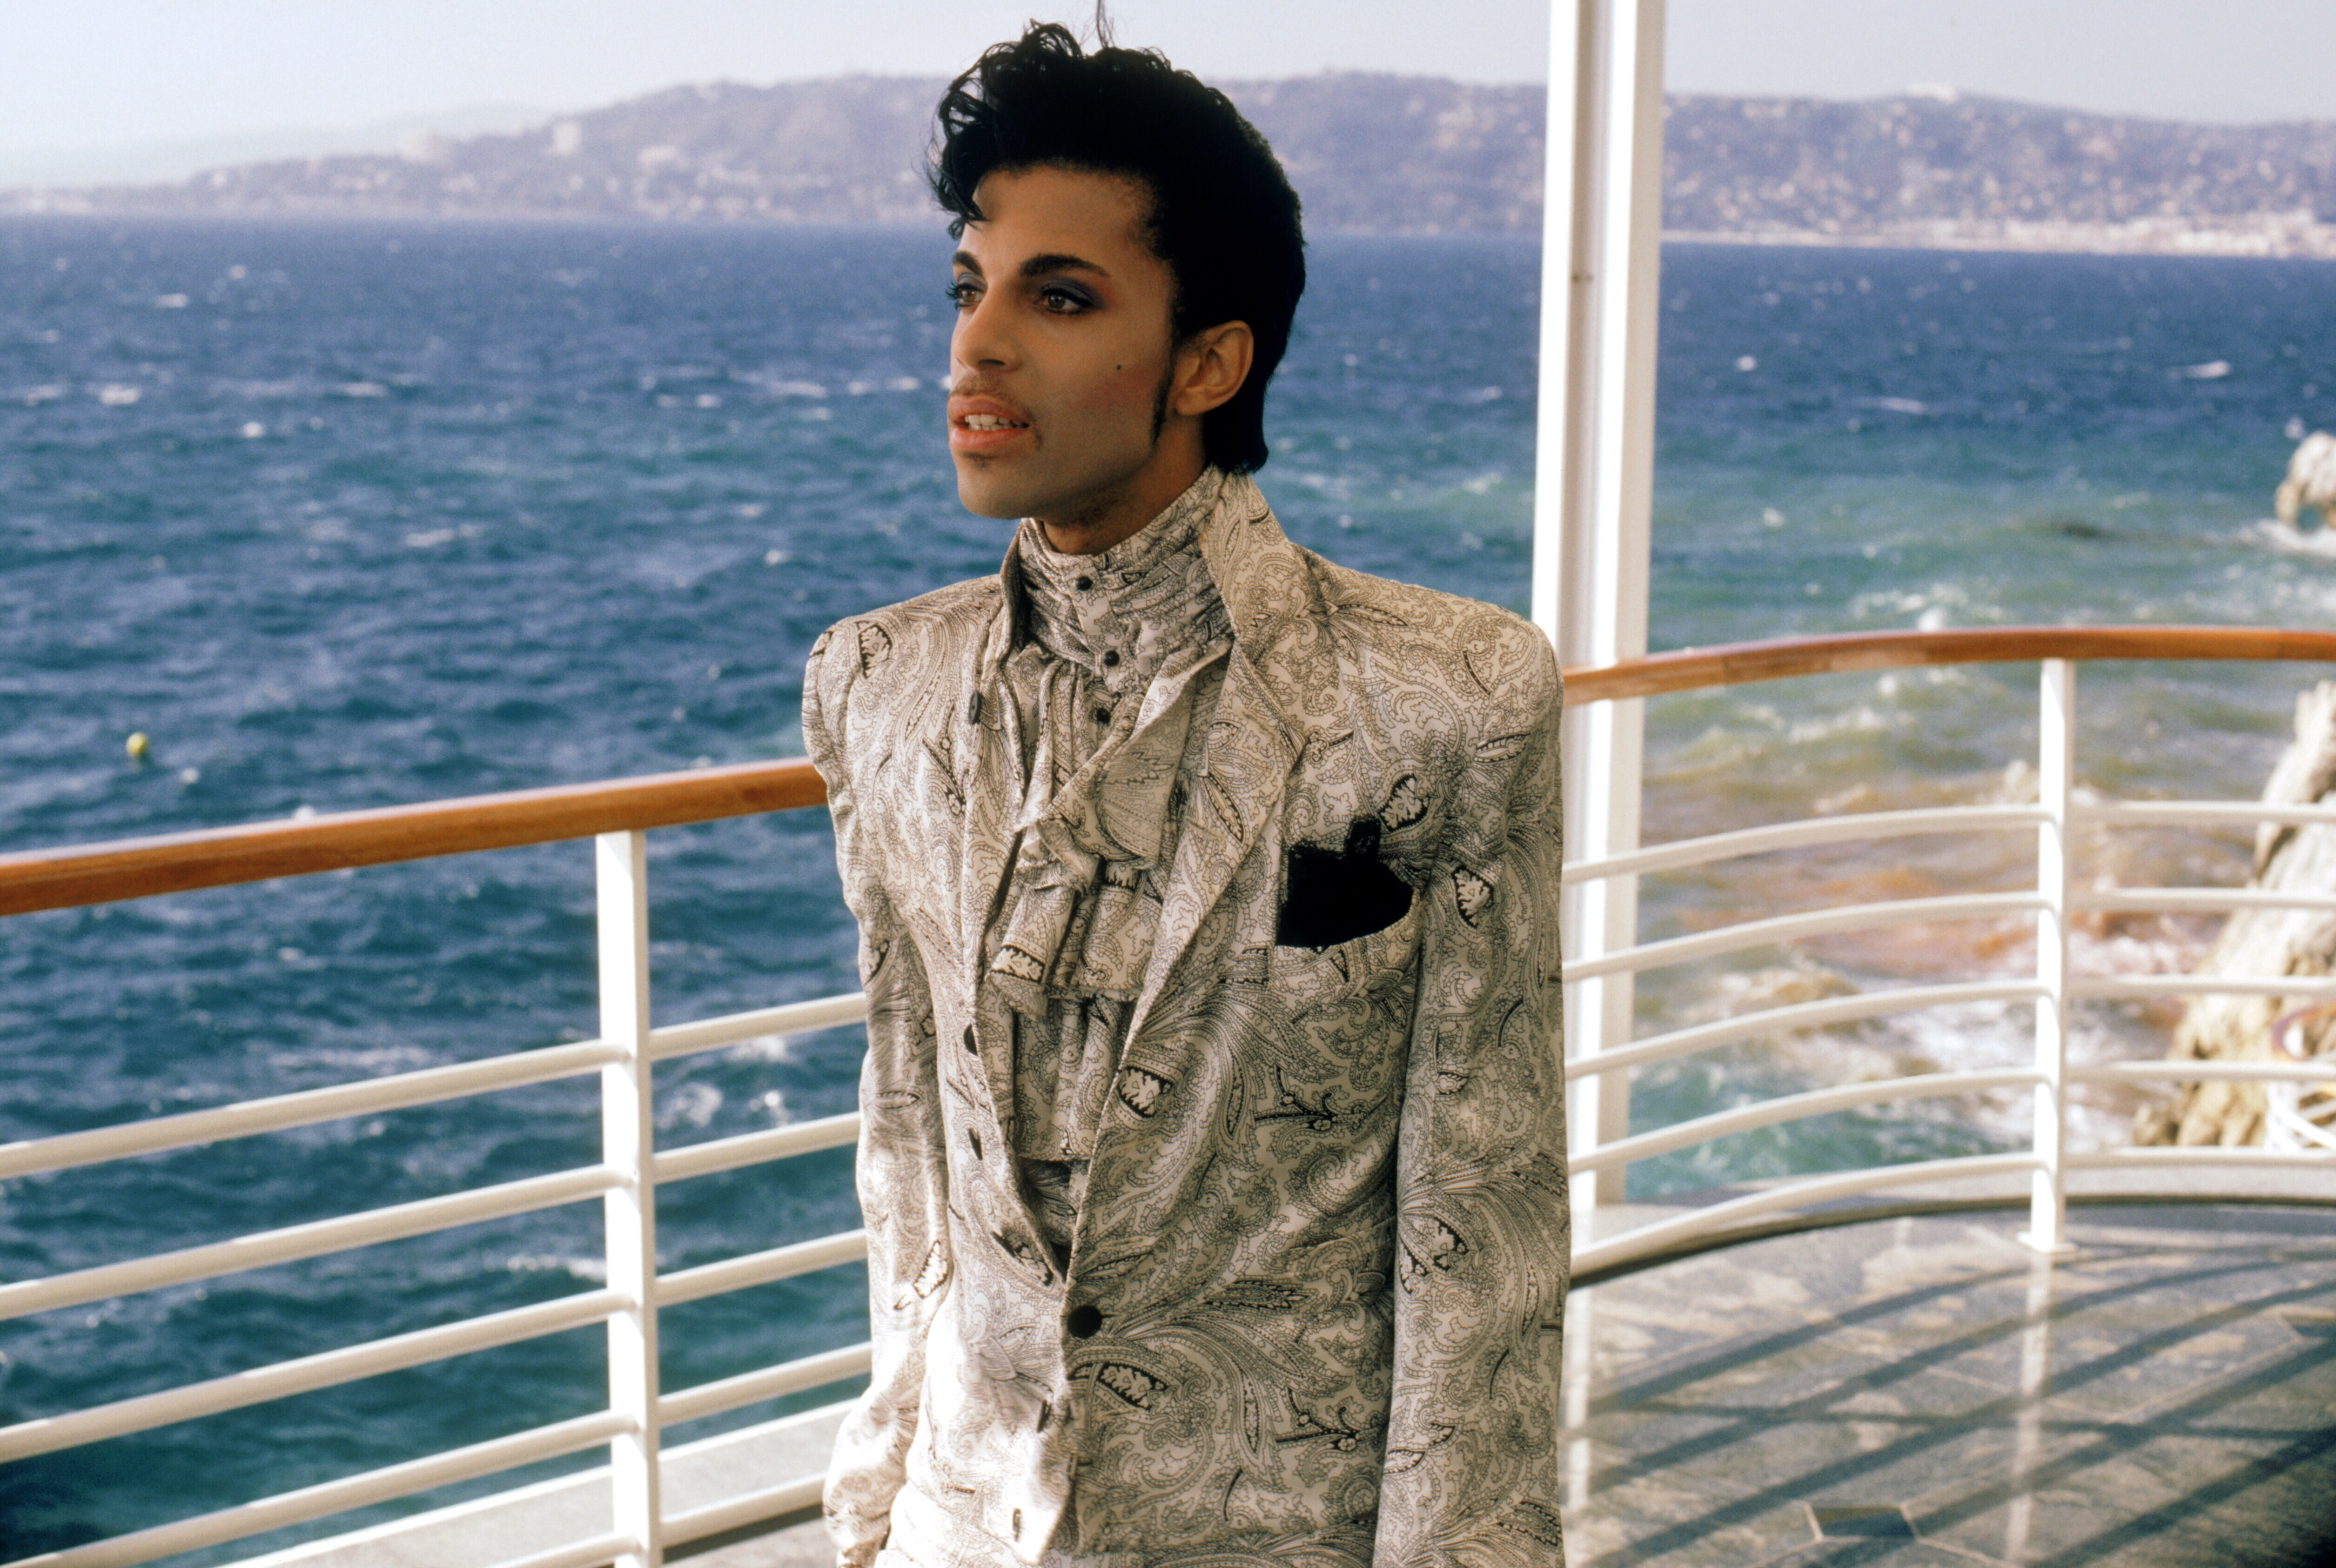 Prince in <i>Under the Cherry Moon</i>, 1986.